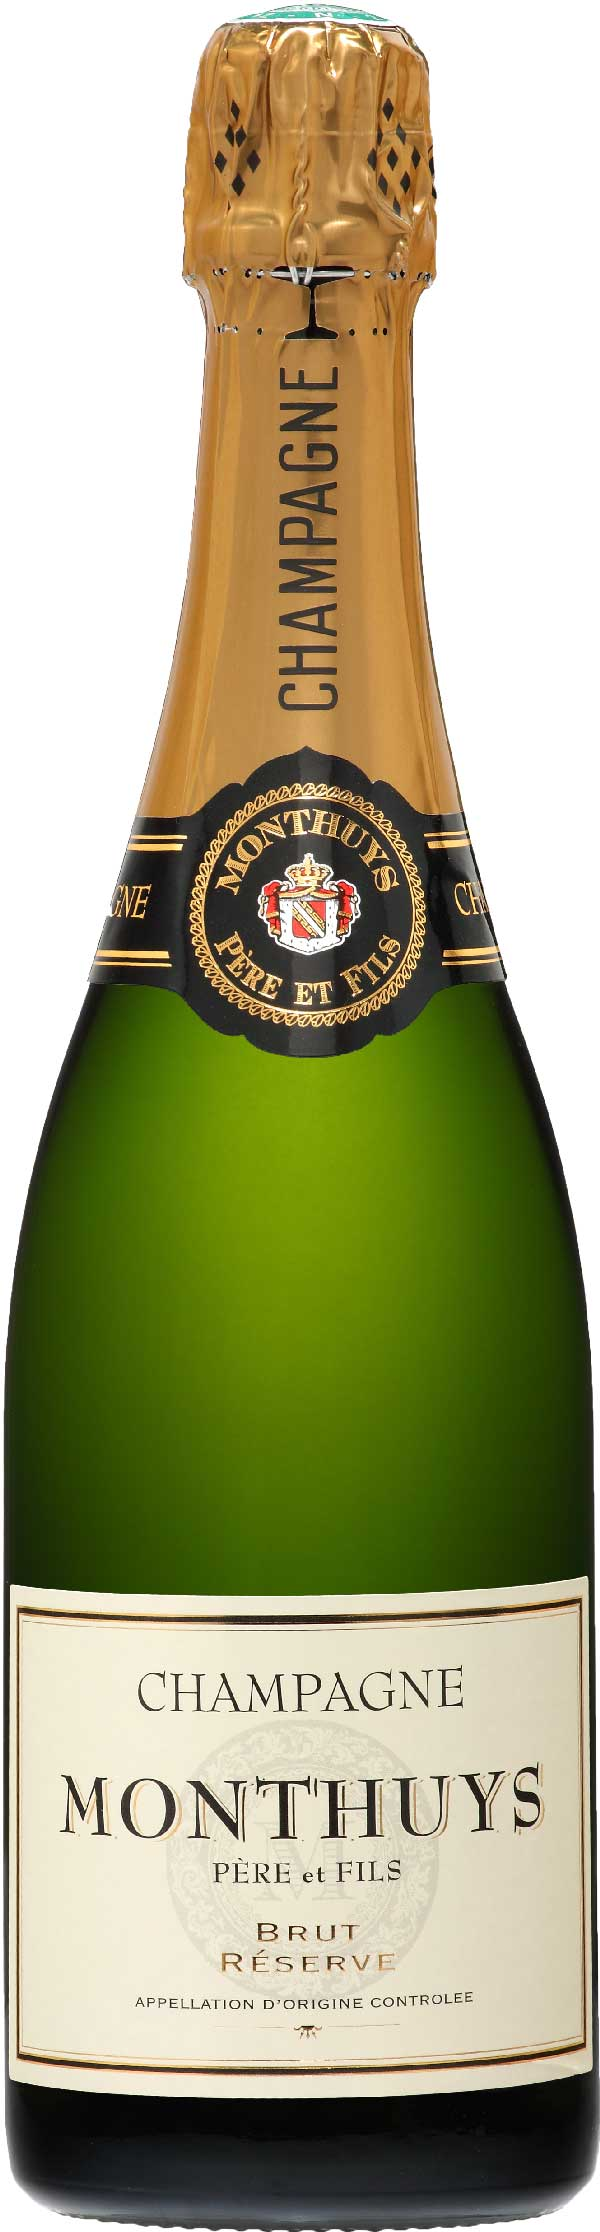 Monthuys-Brut-Reserve